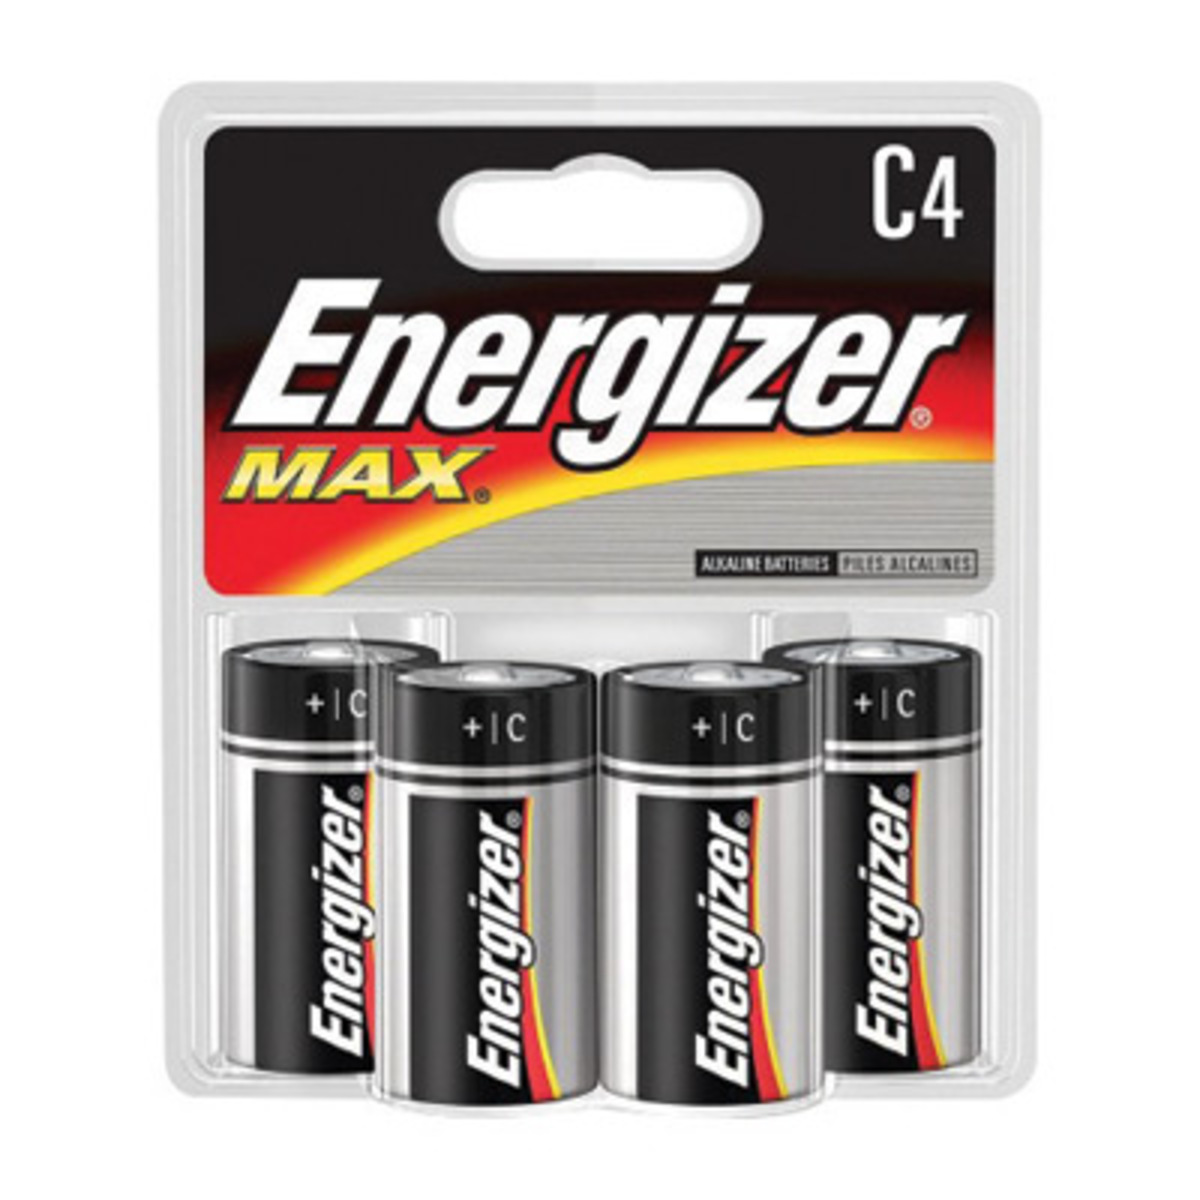 airgas e33e93bp 4 energizer eveready max 1 5 volt c alkaline battery with flat contact. Black Bedroom Furniture Sets. Home Design Ideas